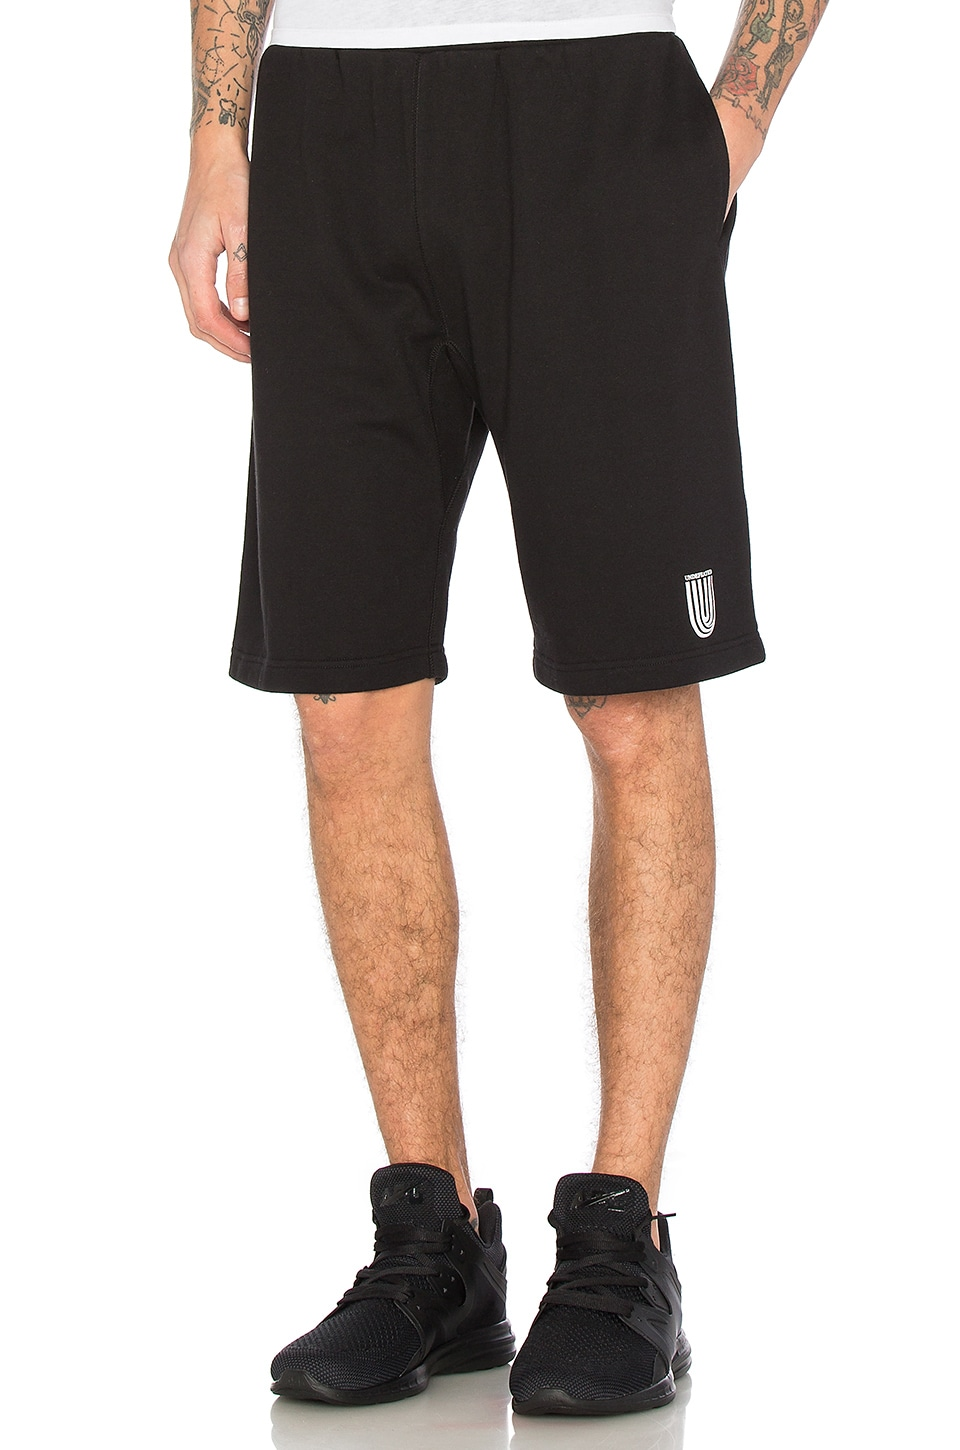 Sweatshort by Undefeated